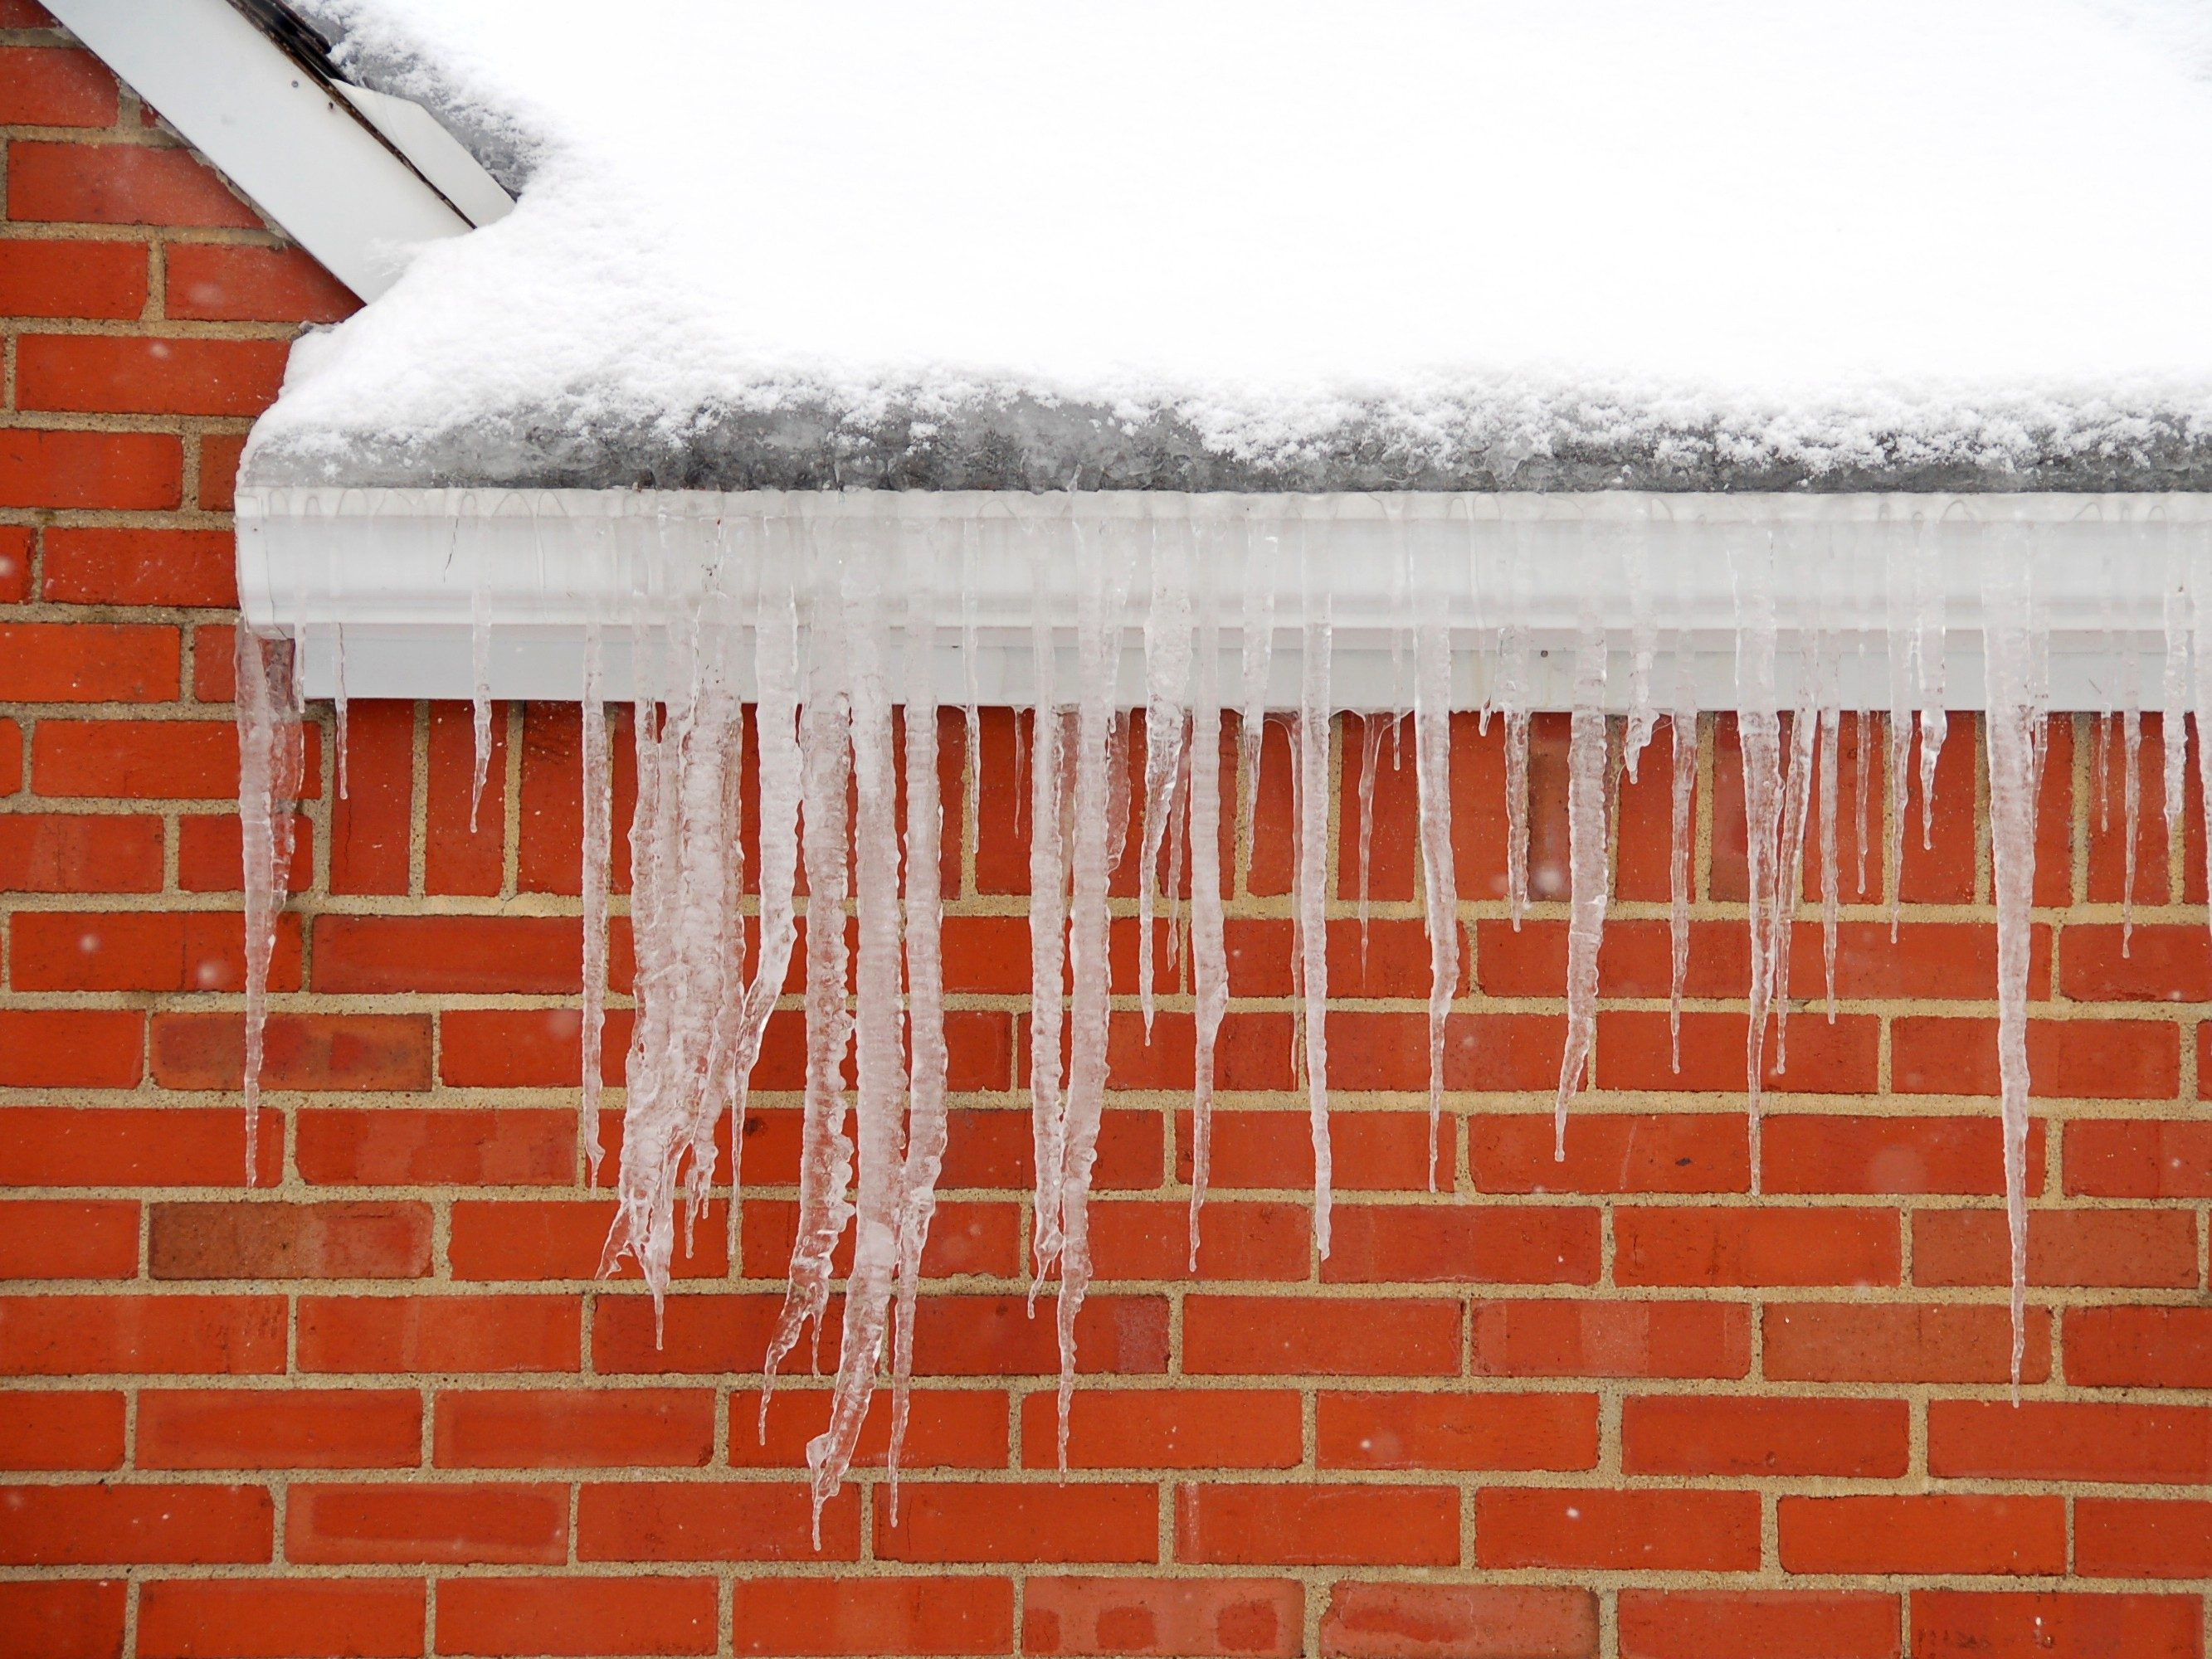 2. Remove ice dams on low-pitched roofs and gutters.